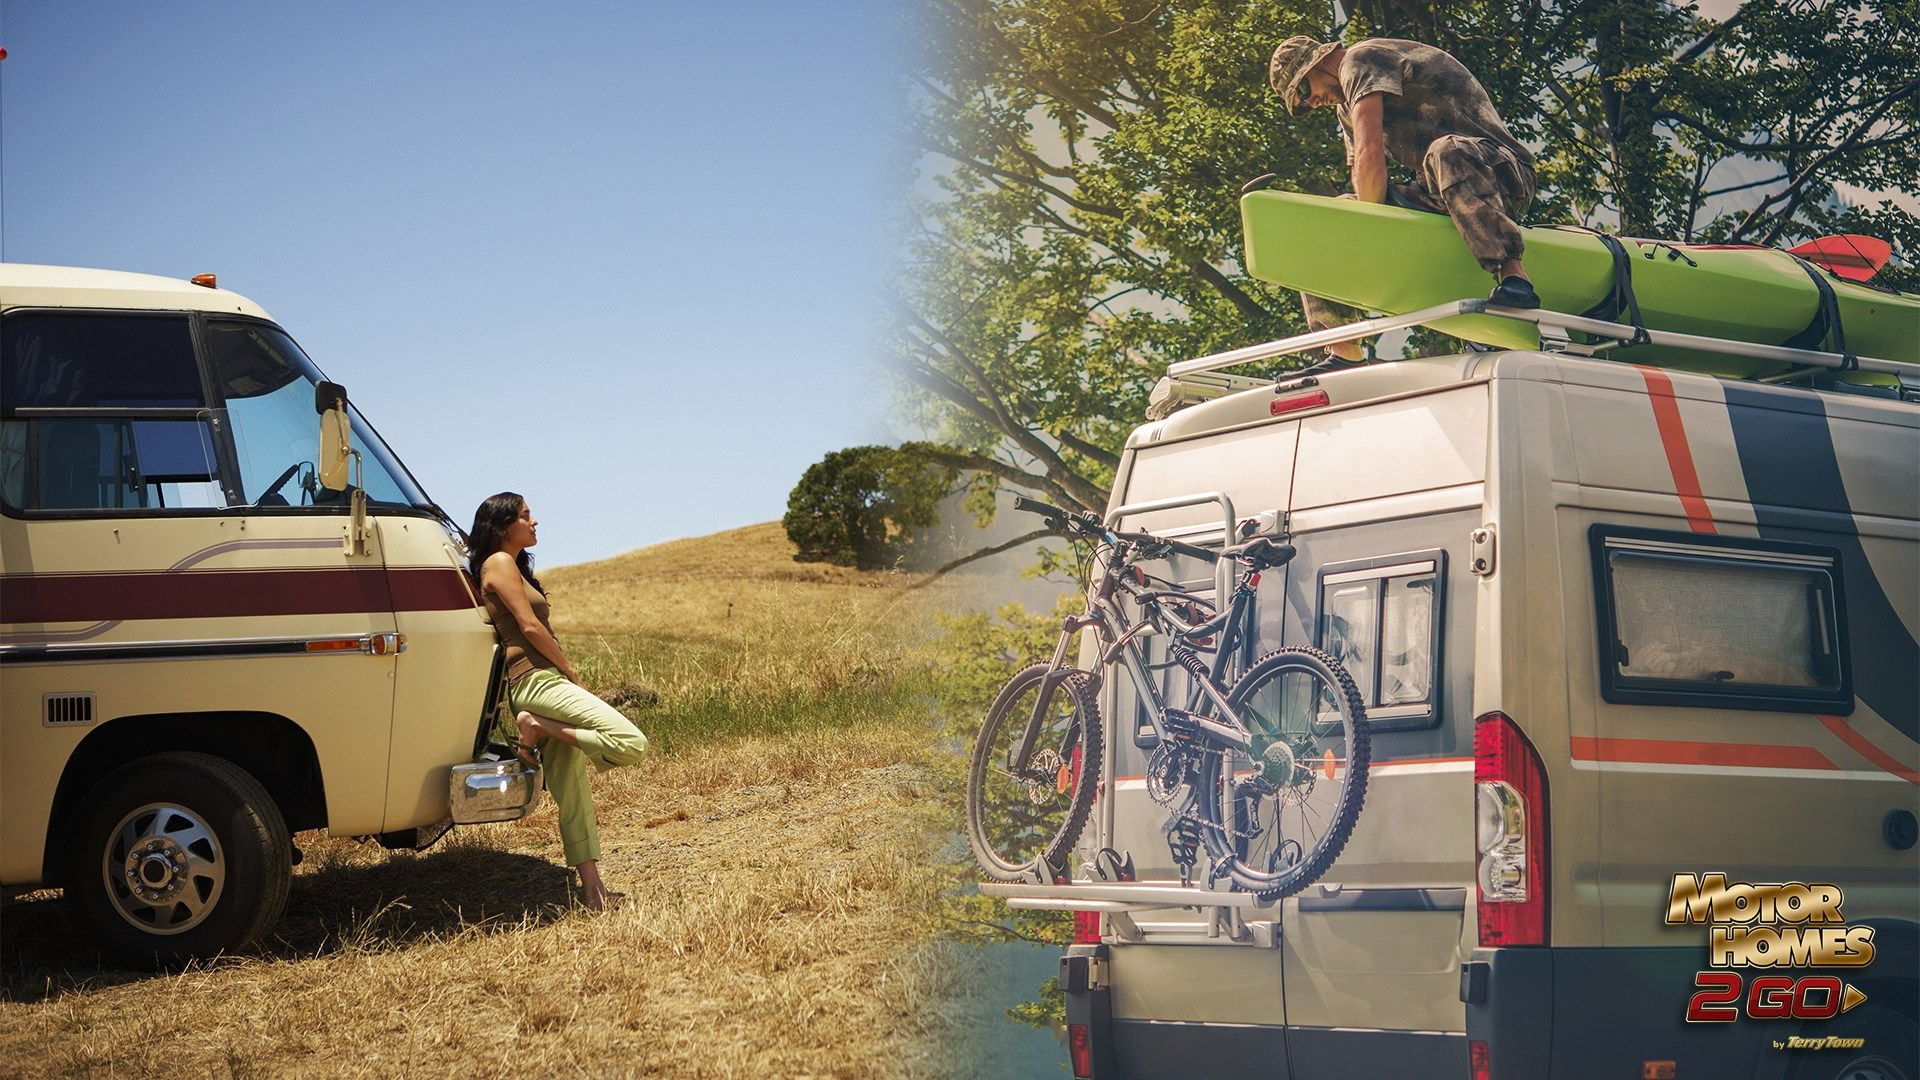 One or Two? Stellar Motorhomes For You and an Adventure